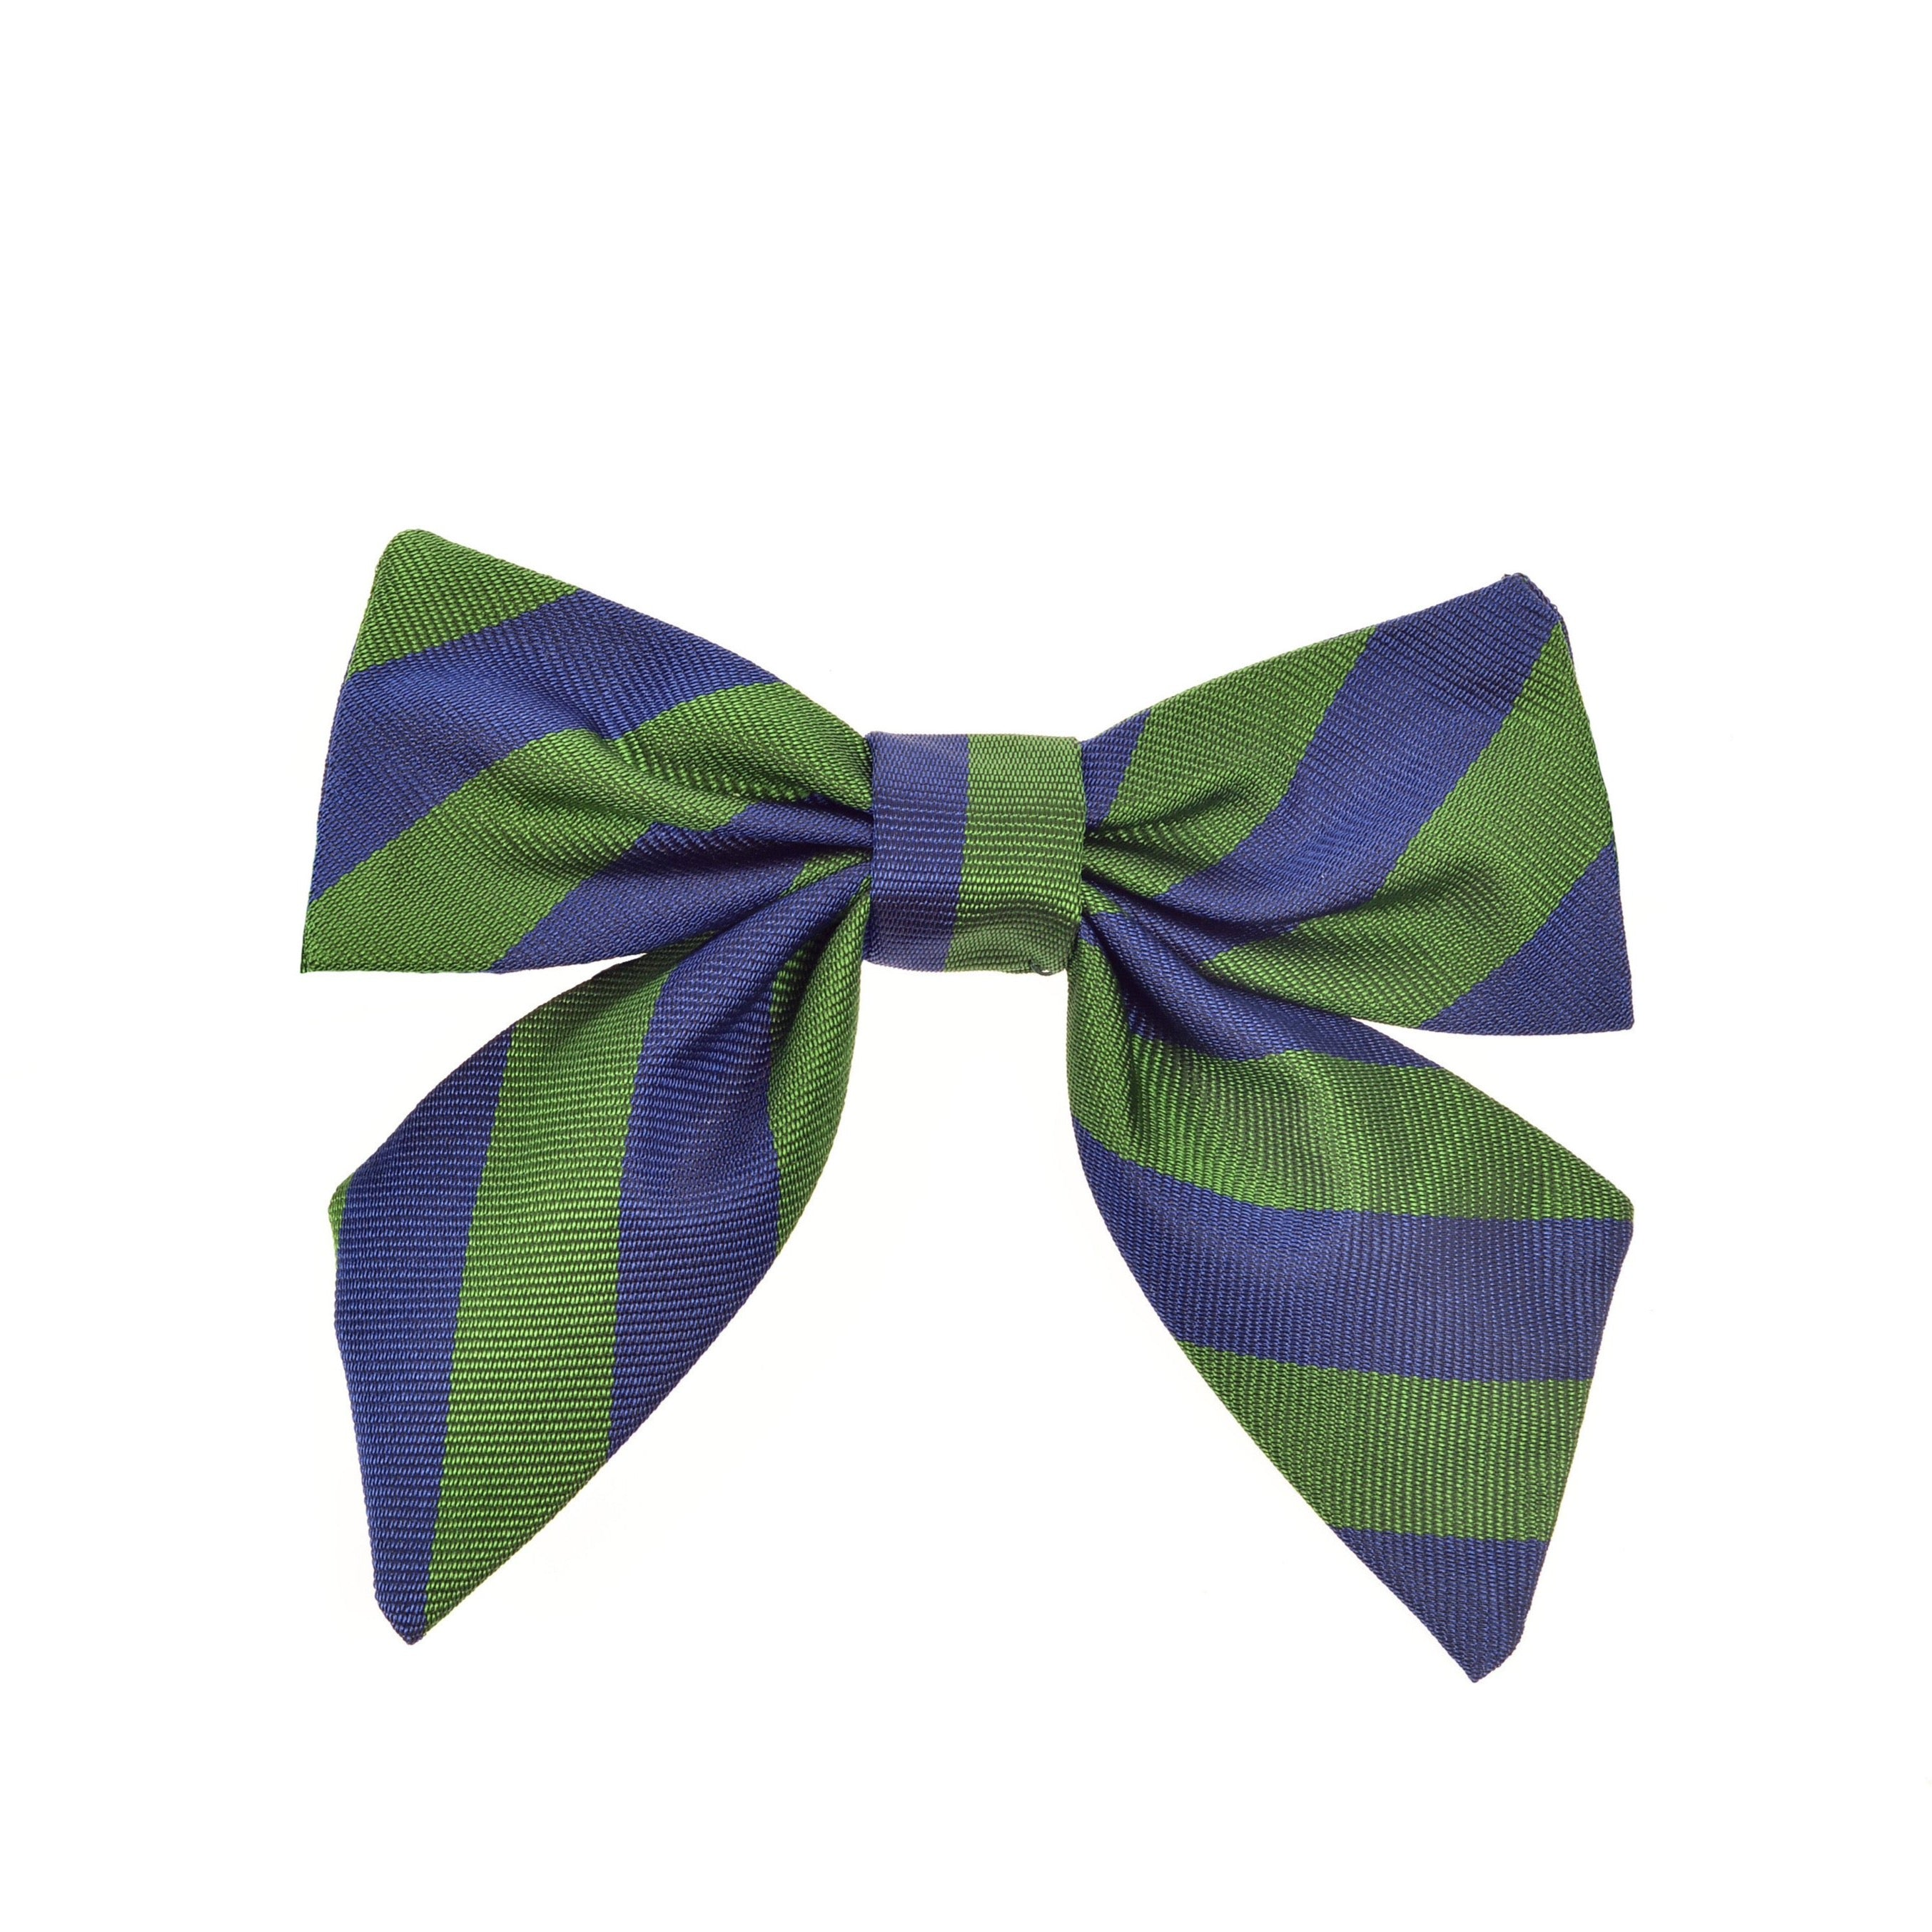 ST CLEMENT S BOW BLUE & GREEN VARSITY STRIPES – The Great British